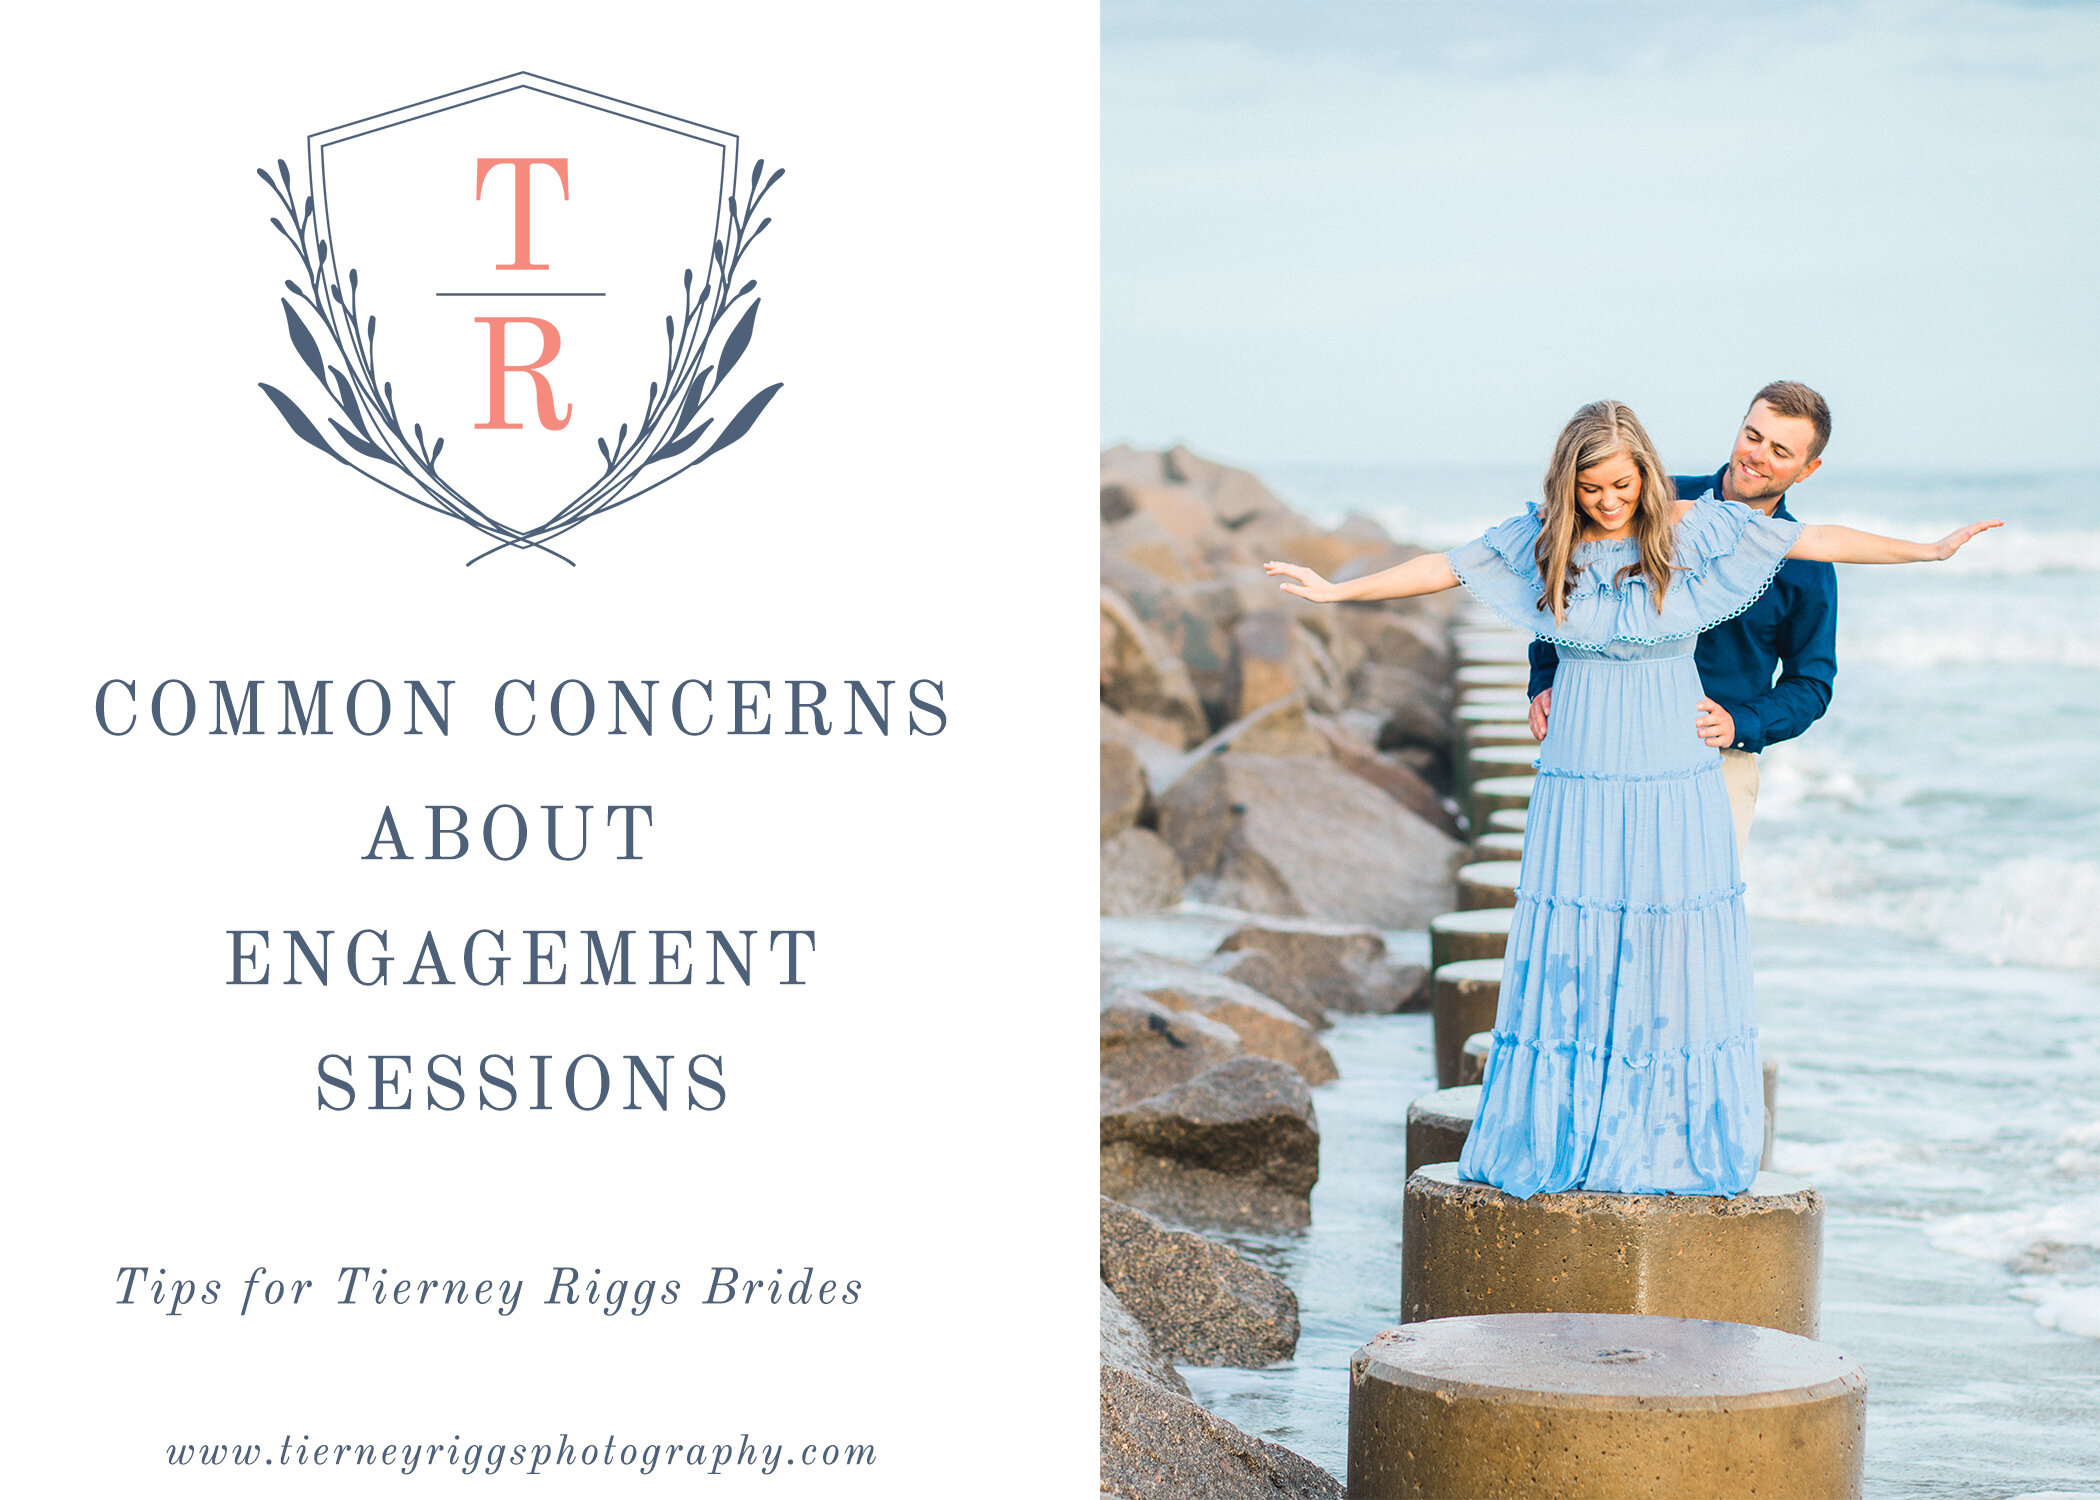 COMMON-CONCERNS-ABOUT-ENGAGEMENT-SESSION